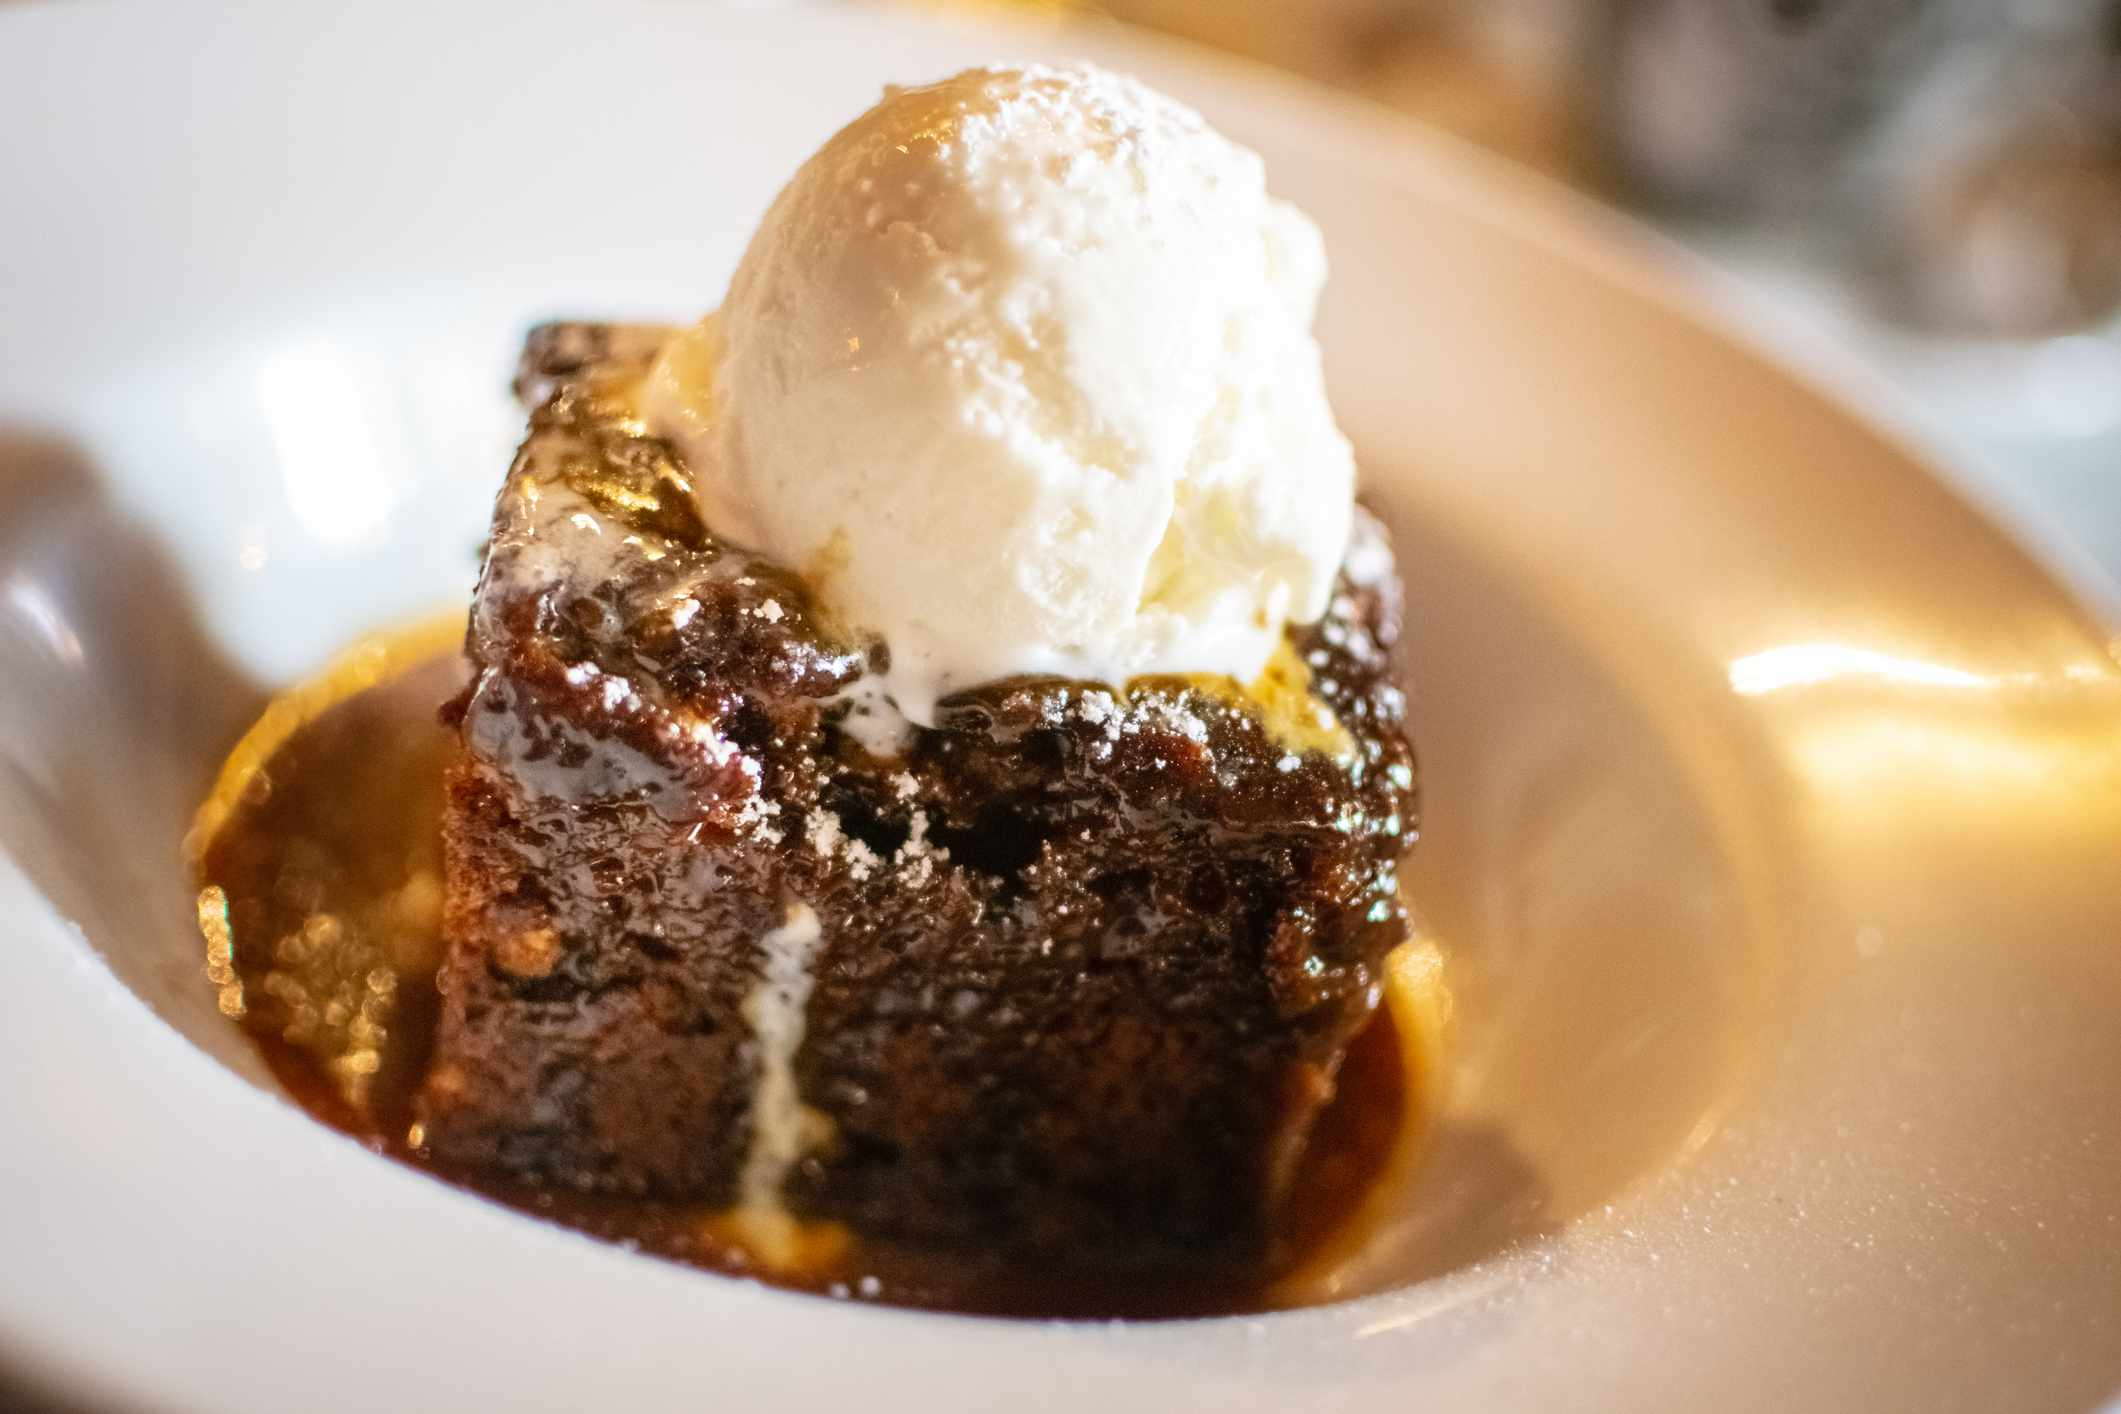 Sticky toffee pudding served with ice cream